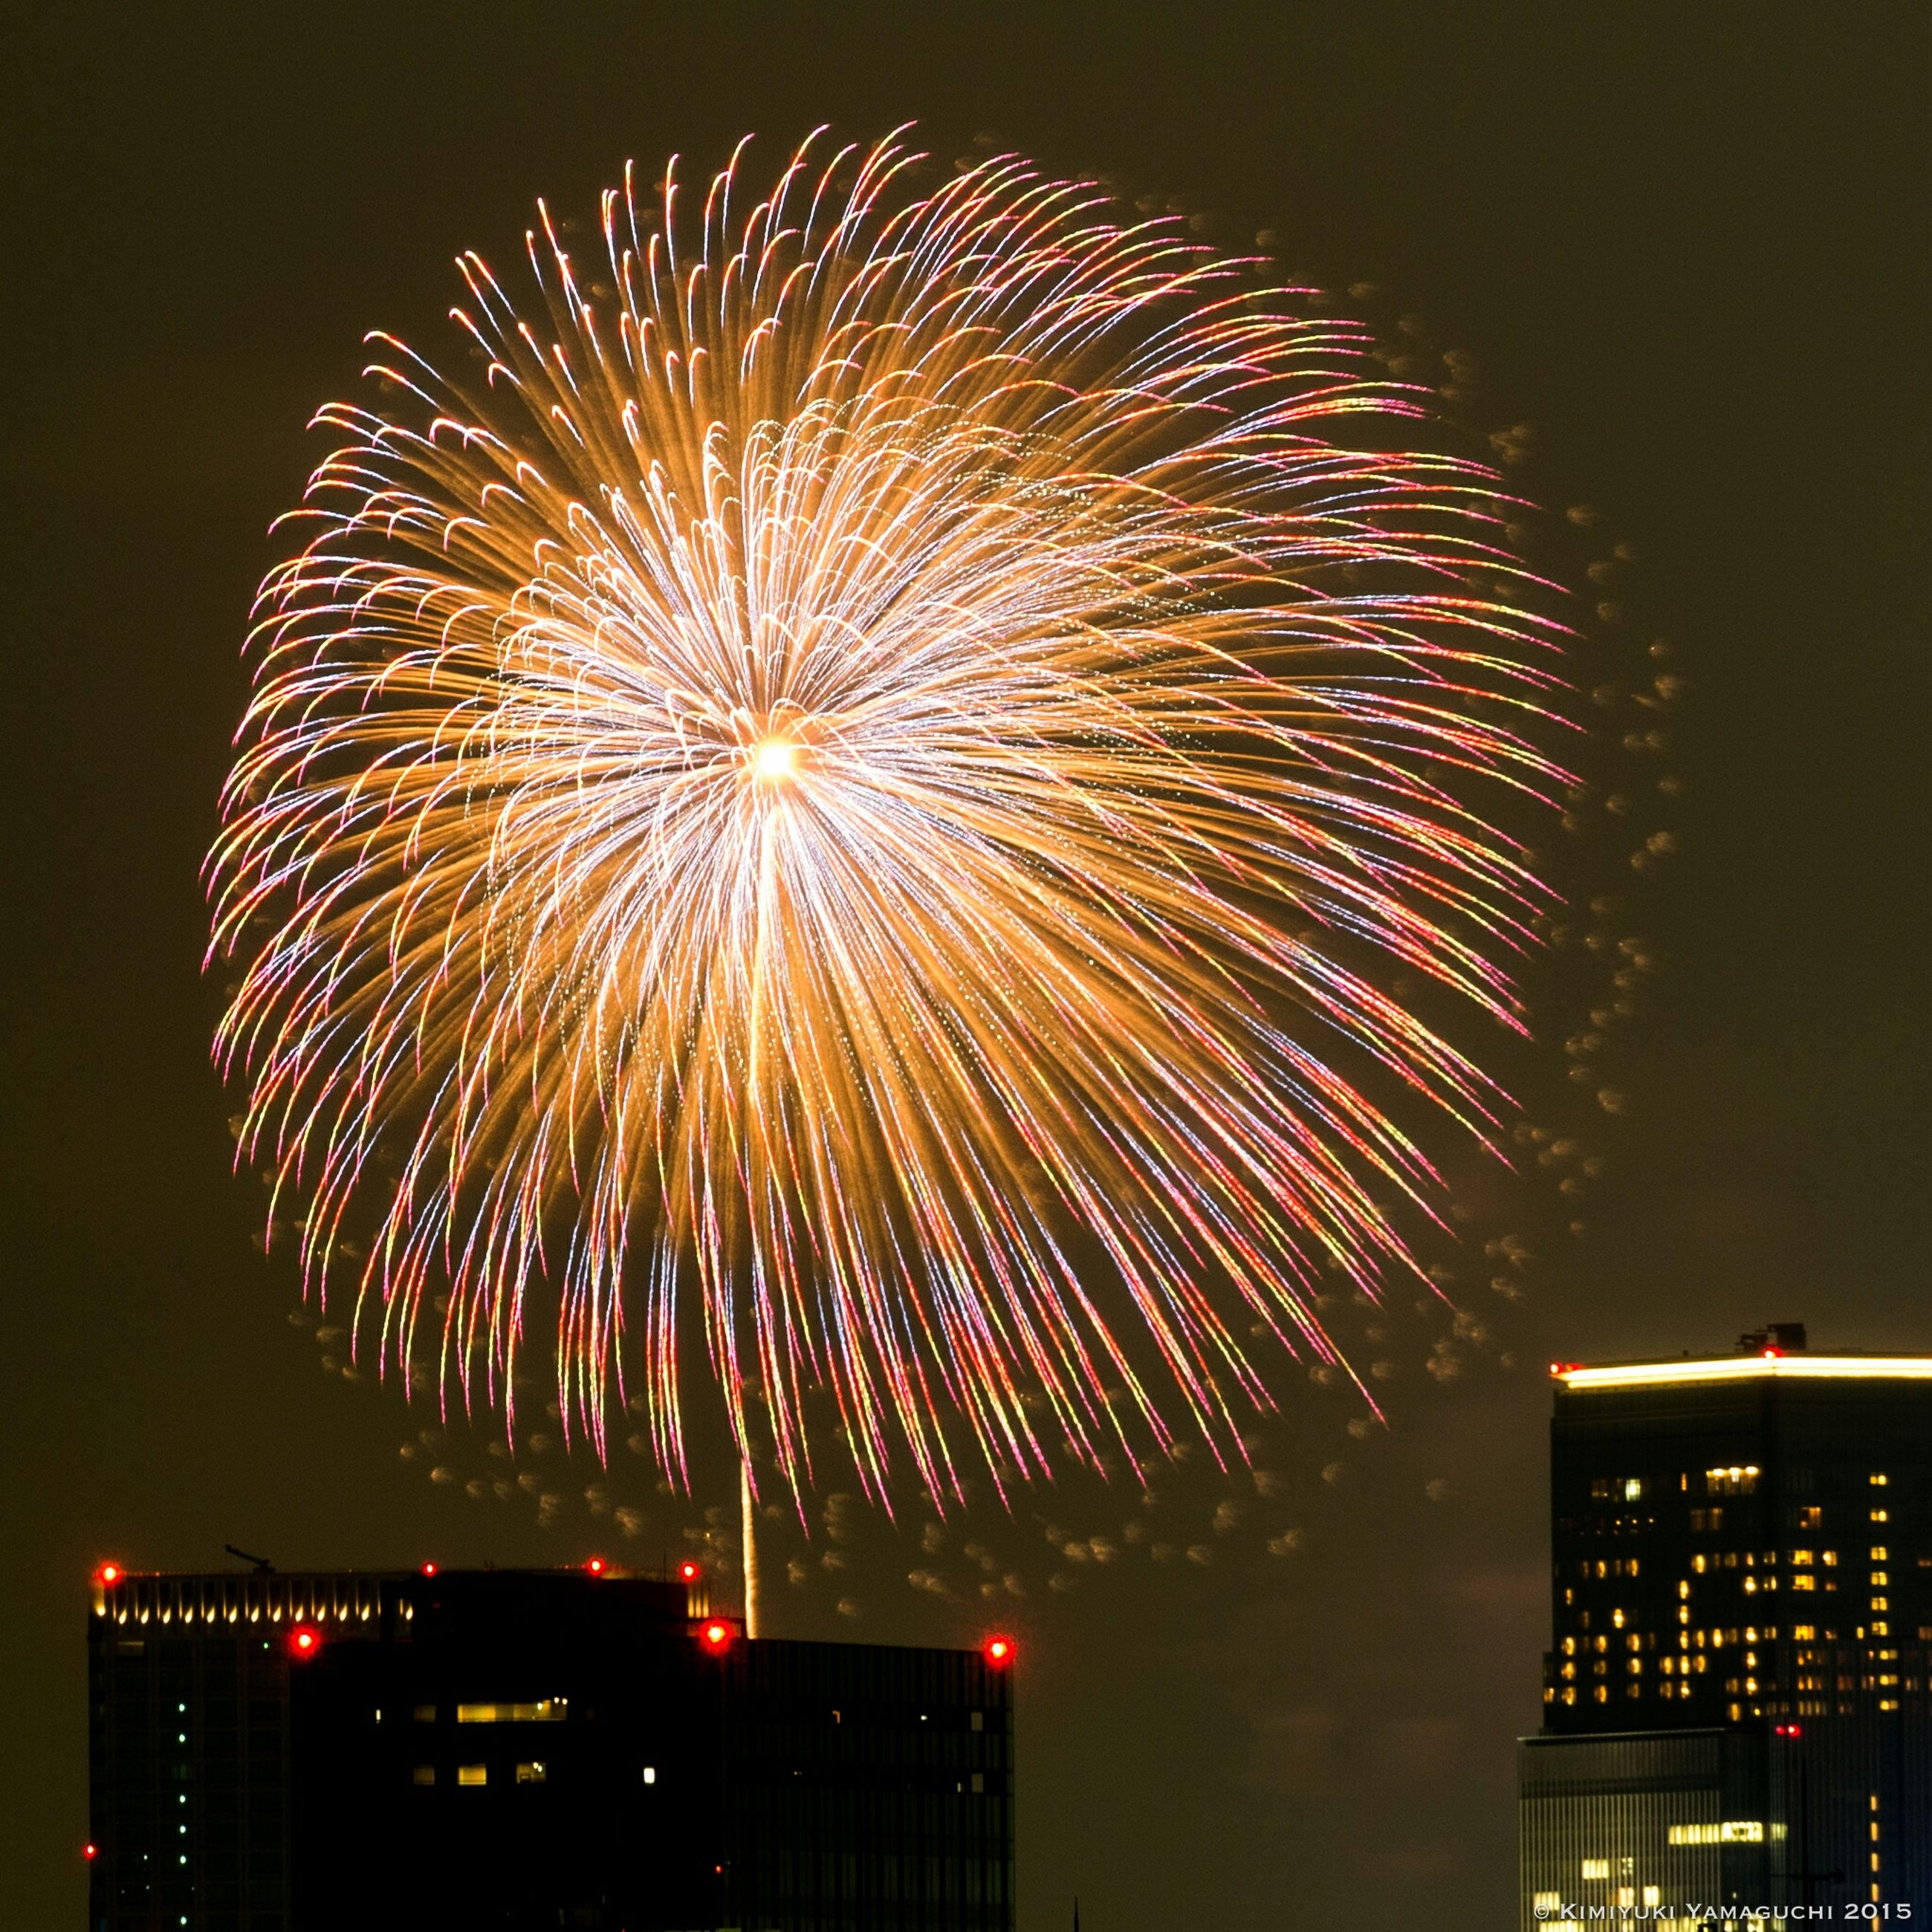 illuminated, night, firework display, celebration, exploding, firework - man made object, long exposure, arts culture and entertainment, low angle view, event, glowing, firework, sparks, building exterior, motion, entertainment, multi colored, built structure, sky, architecture